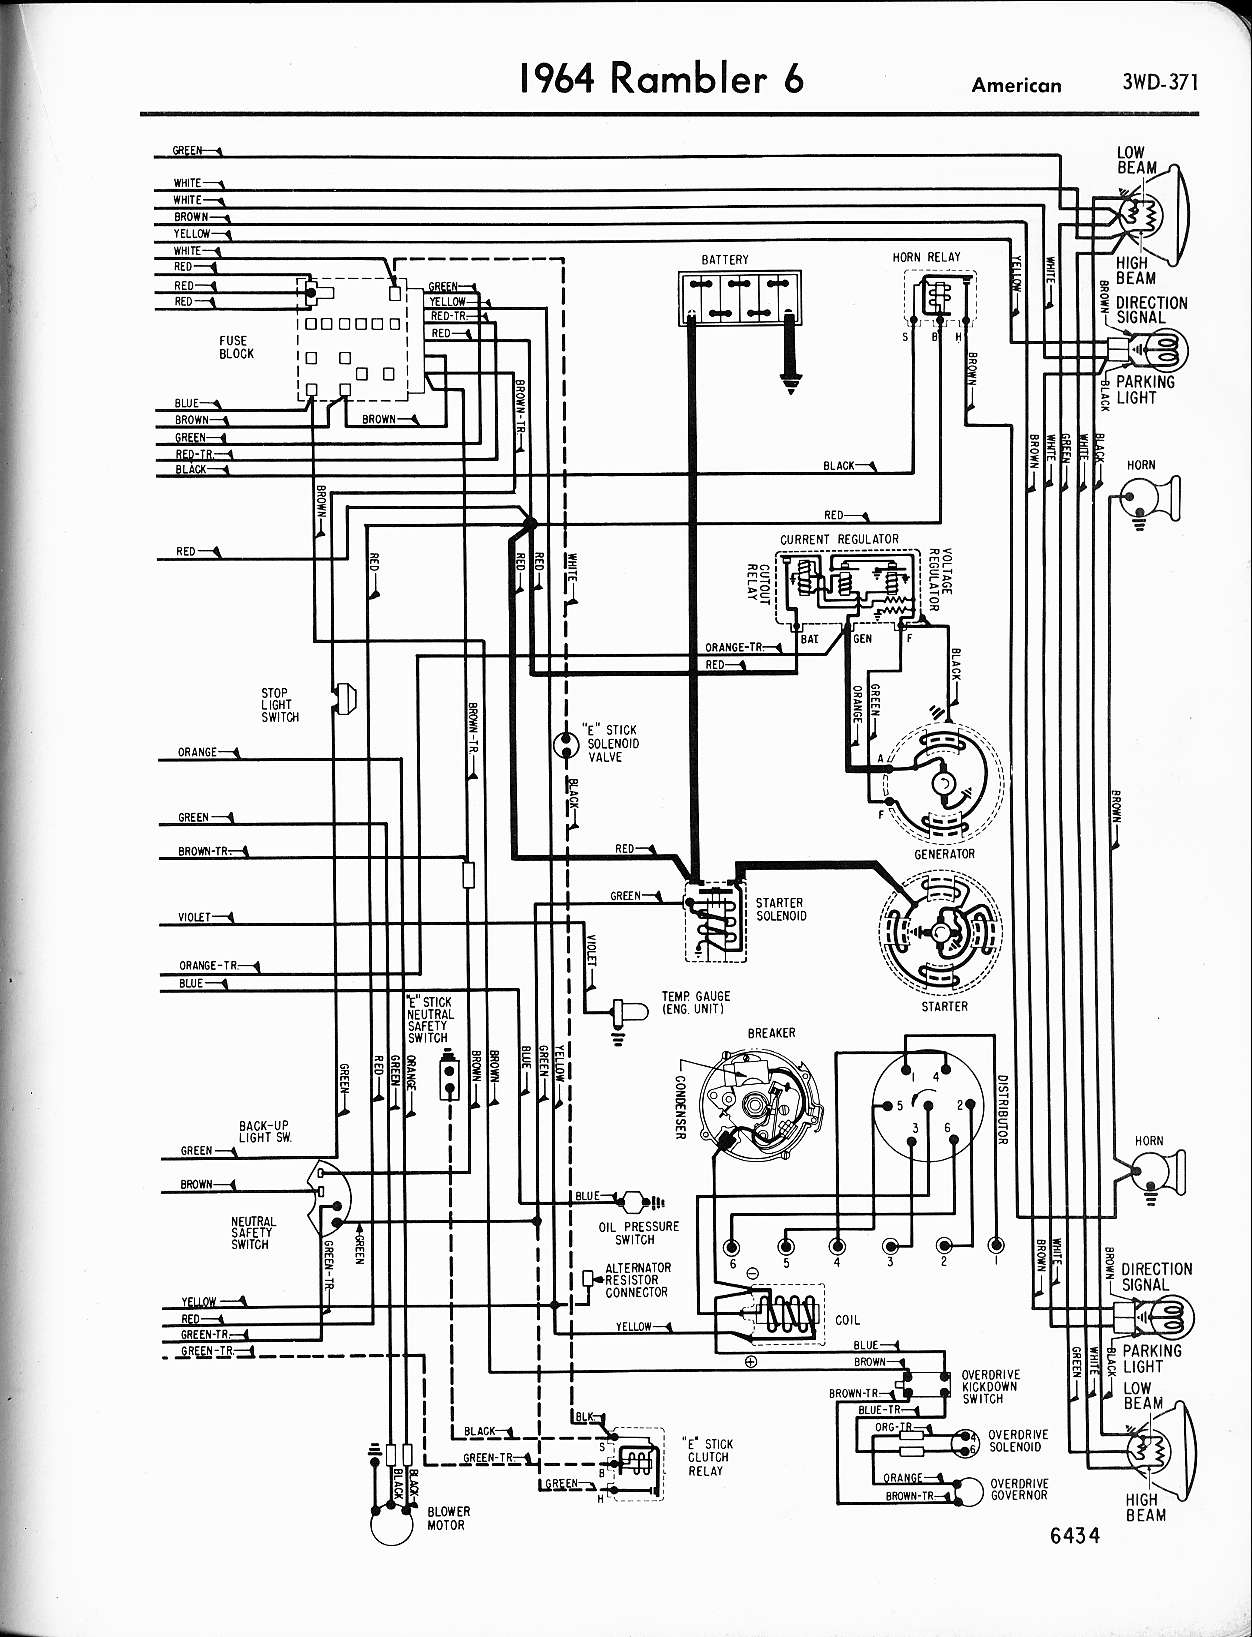 2005 Chevy Clic Radio Wiring Diagram • Wiring Diagram For Free